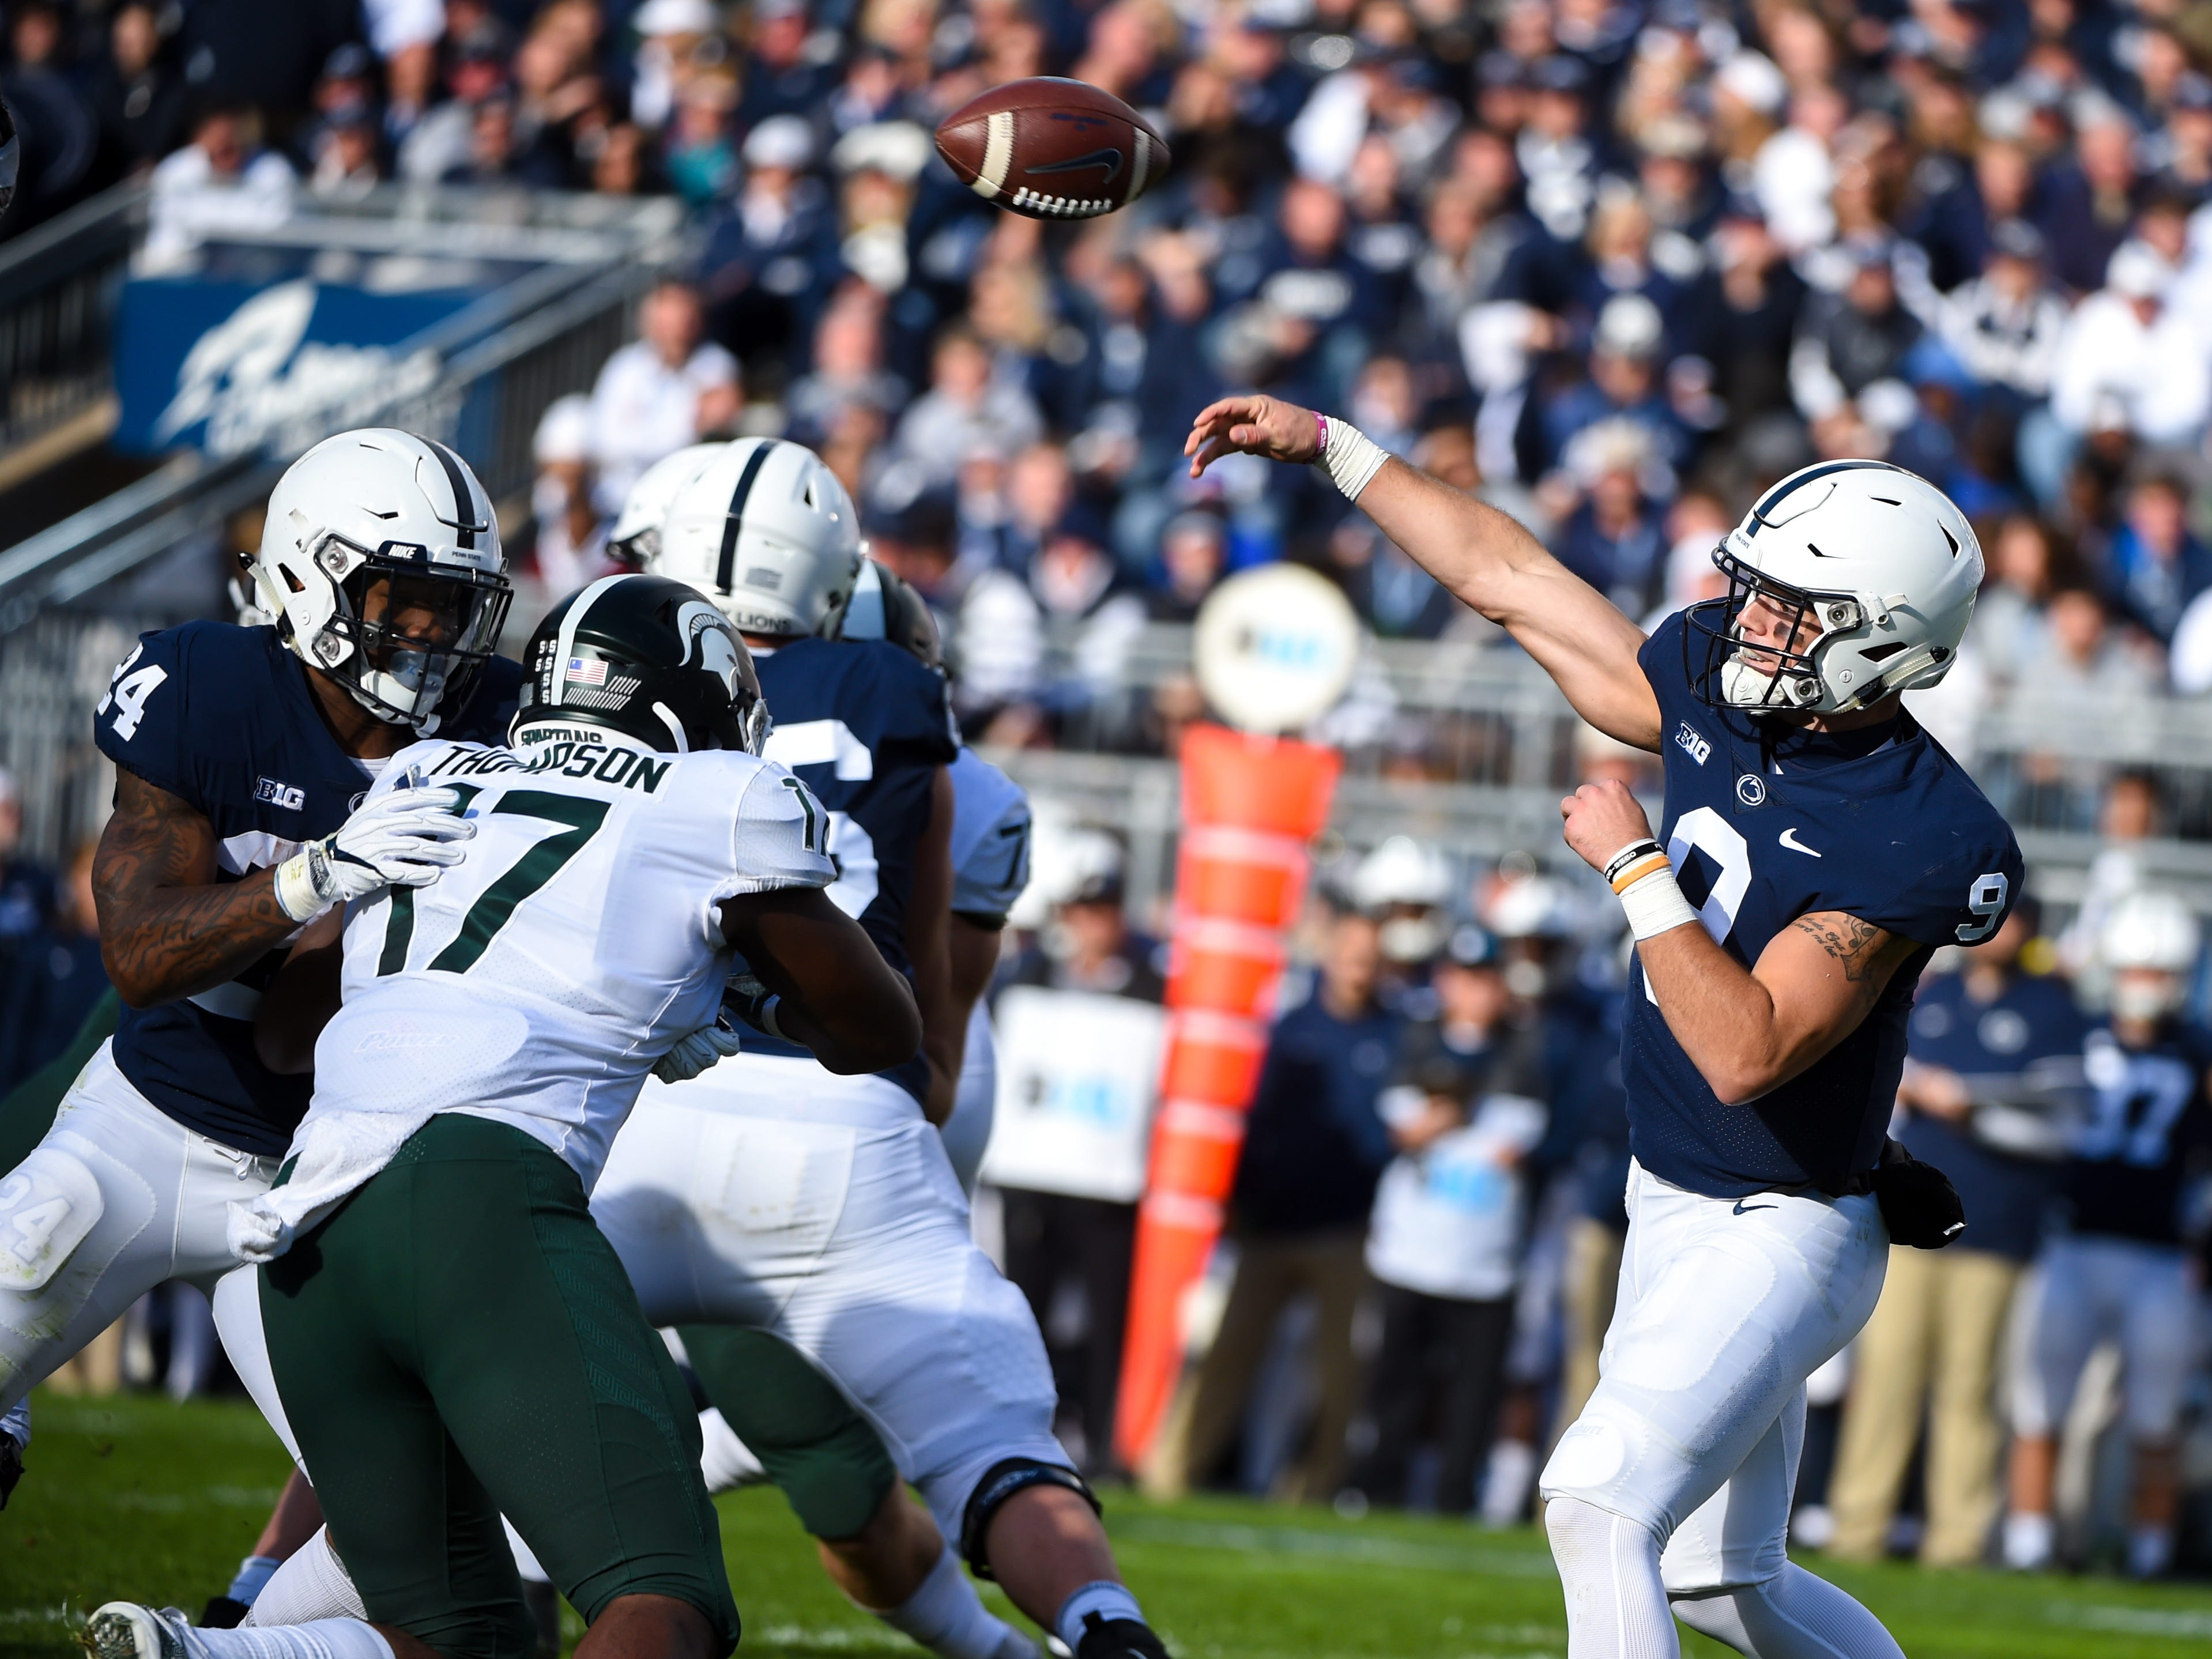 Trace McSorley (9) sends a pass down field during the Penn State Homecoming game against Michigan State, October 13, 2018. The Nittany Lions fell to the Spartans 17-21.